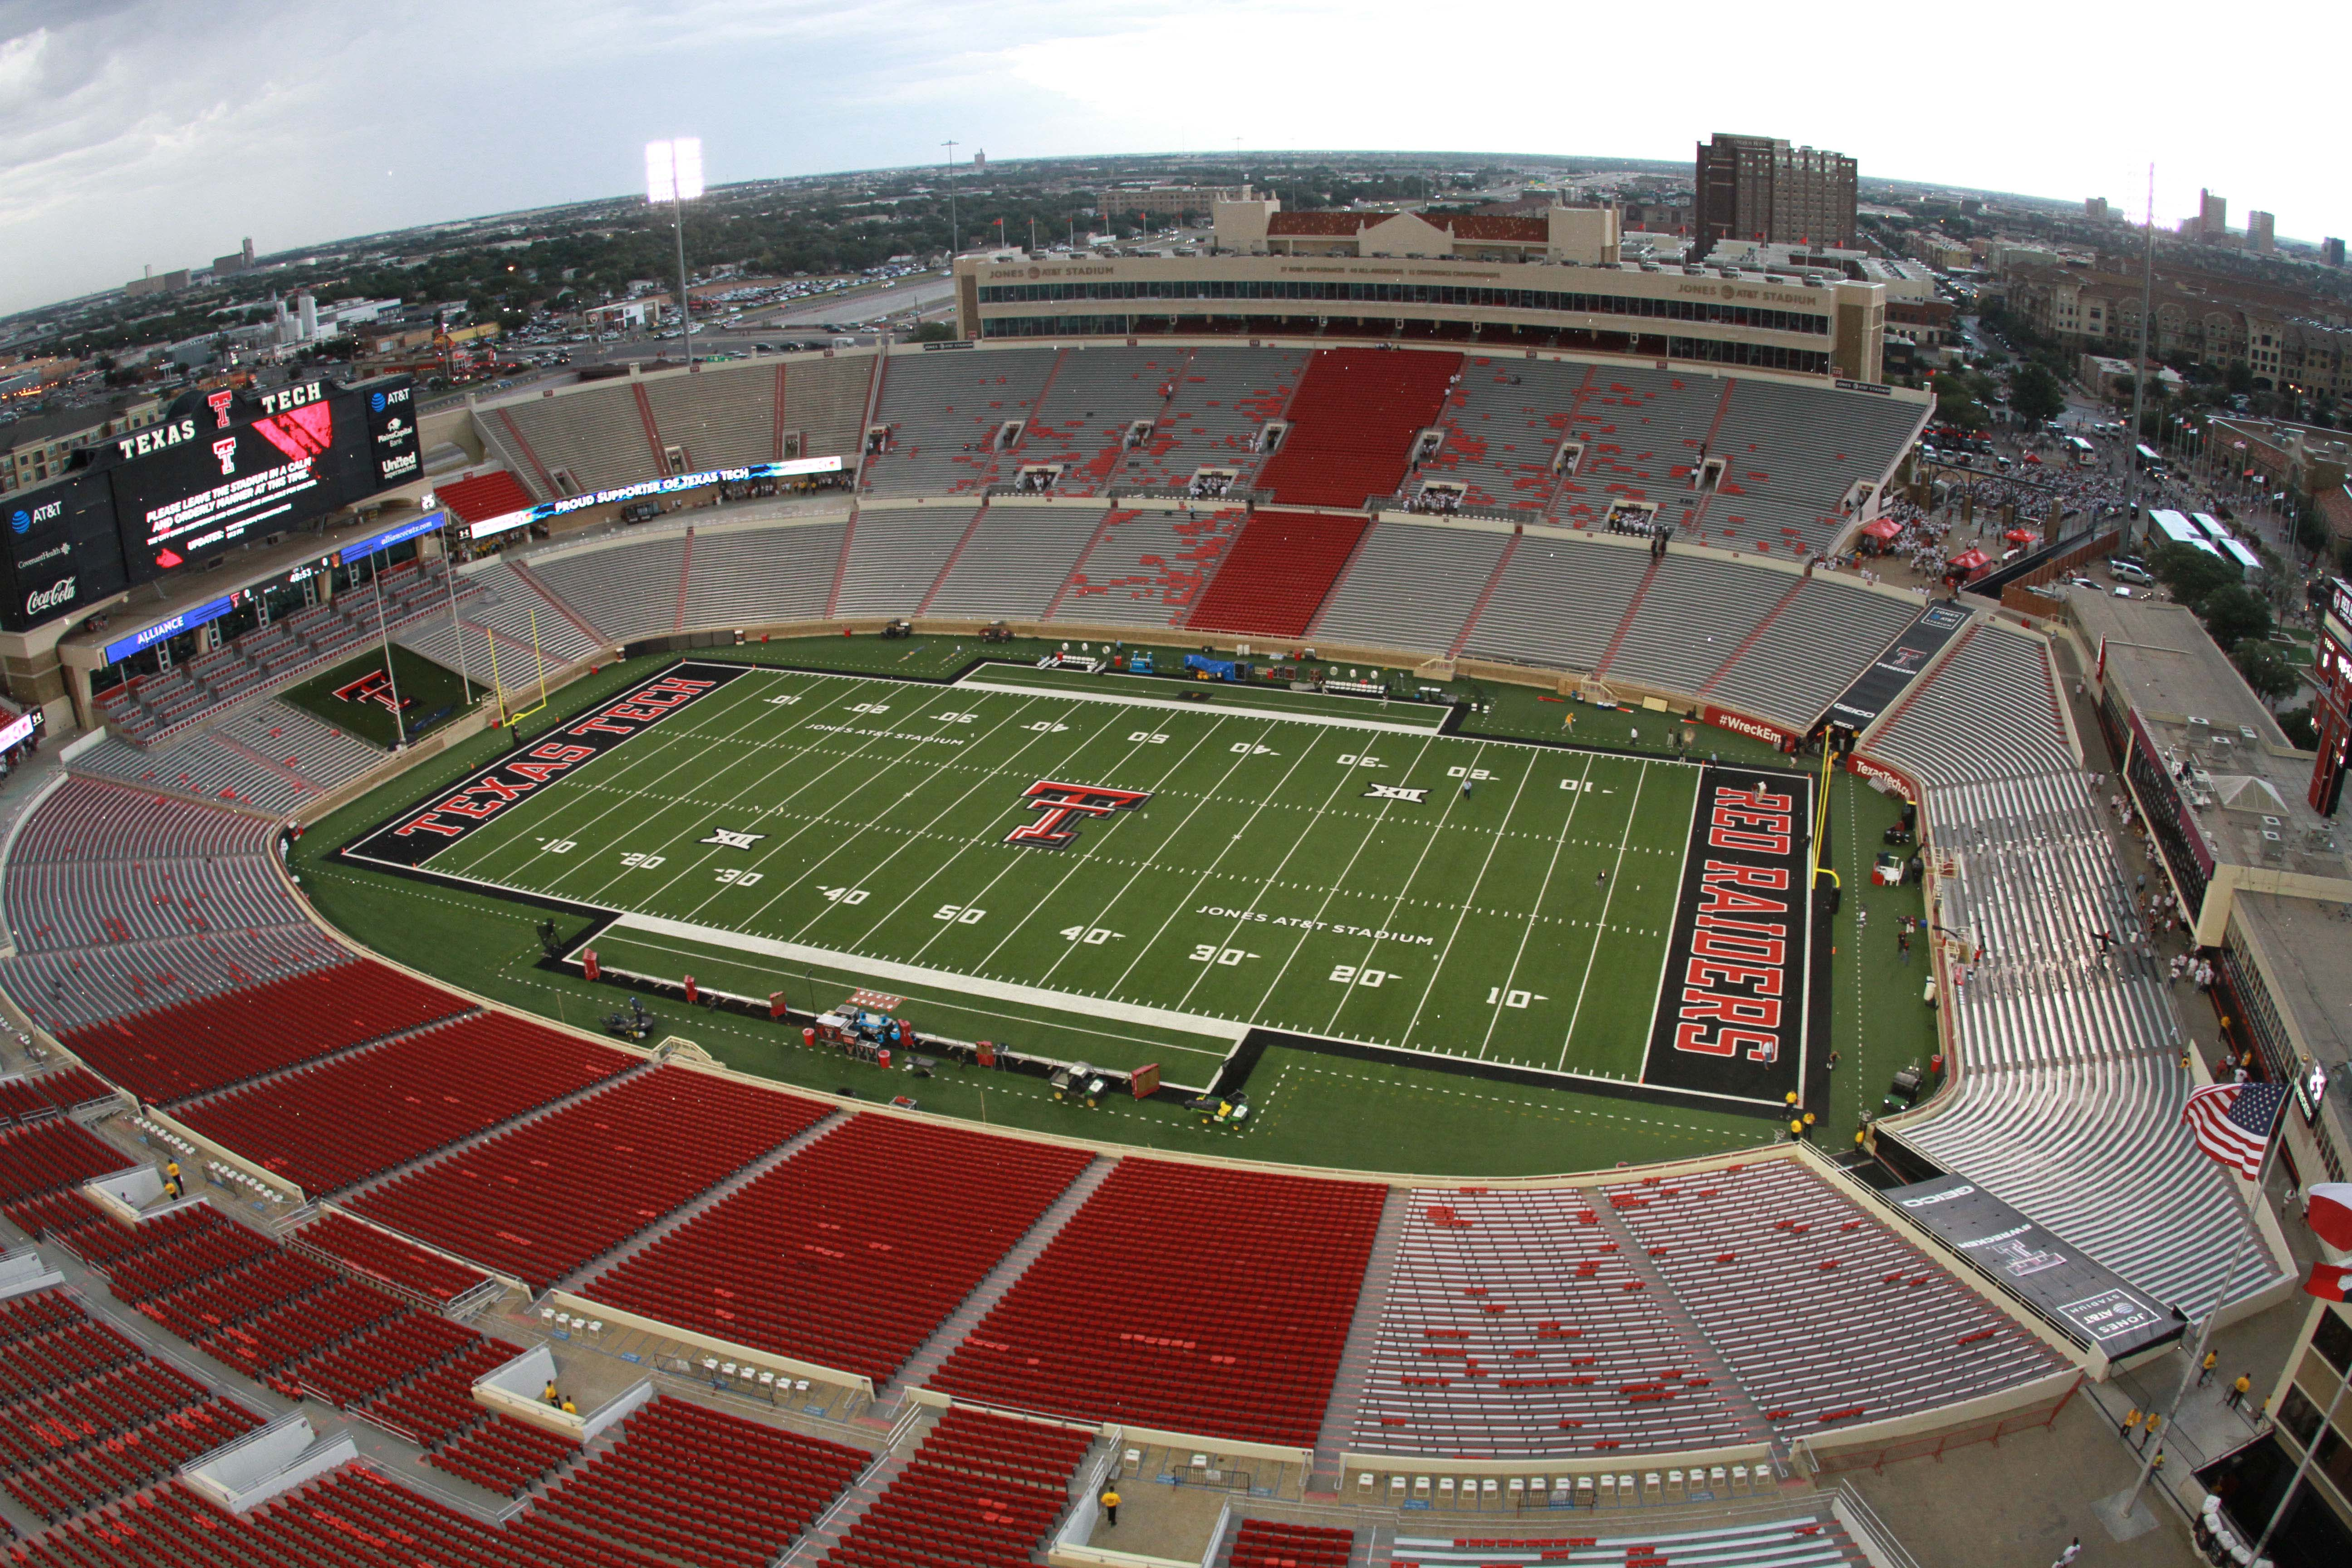 College Football Attendance And Tailgating Plans During Covid